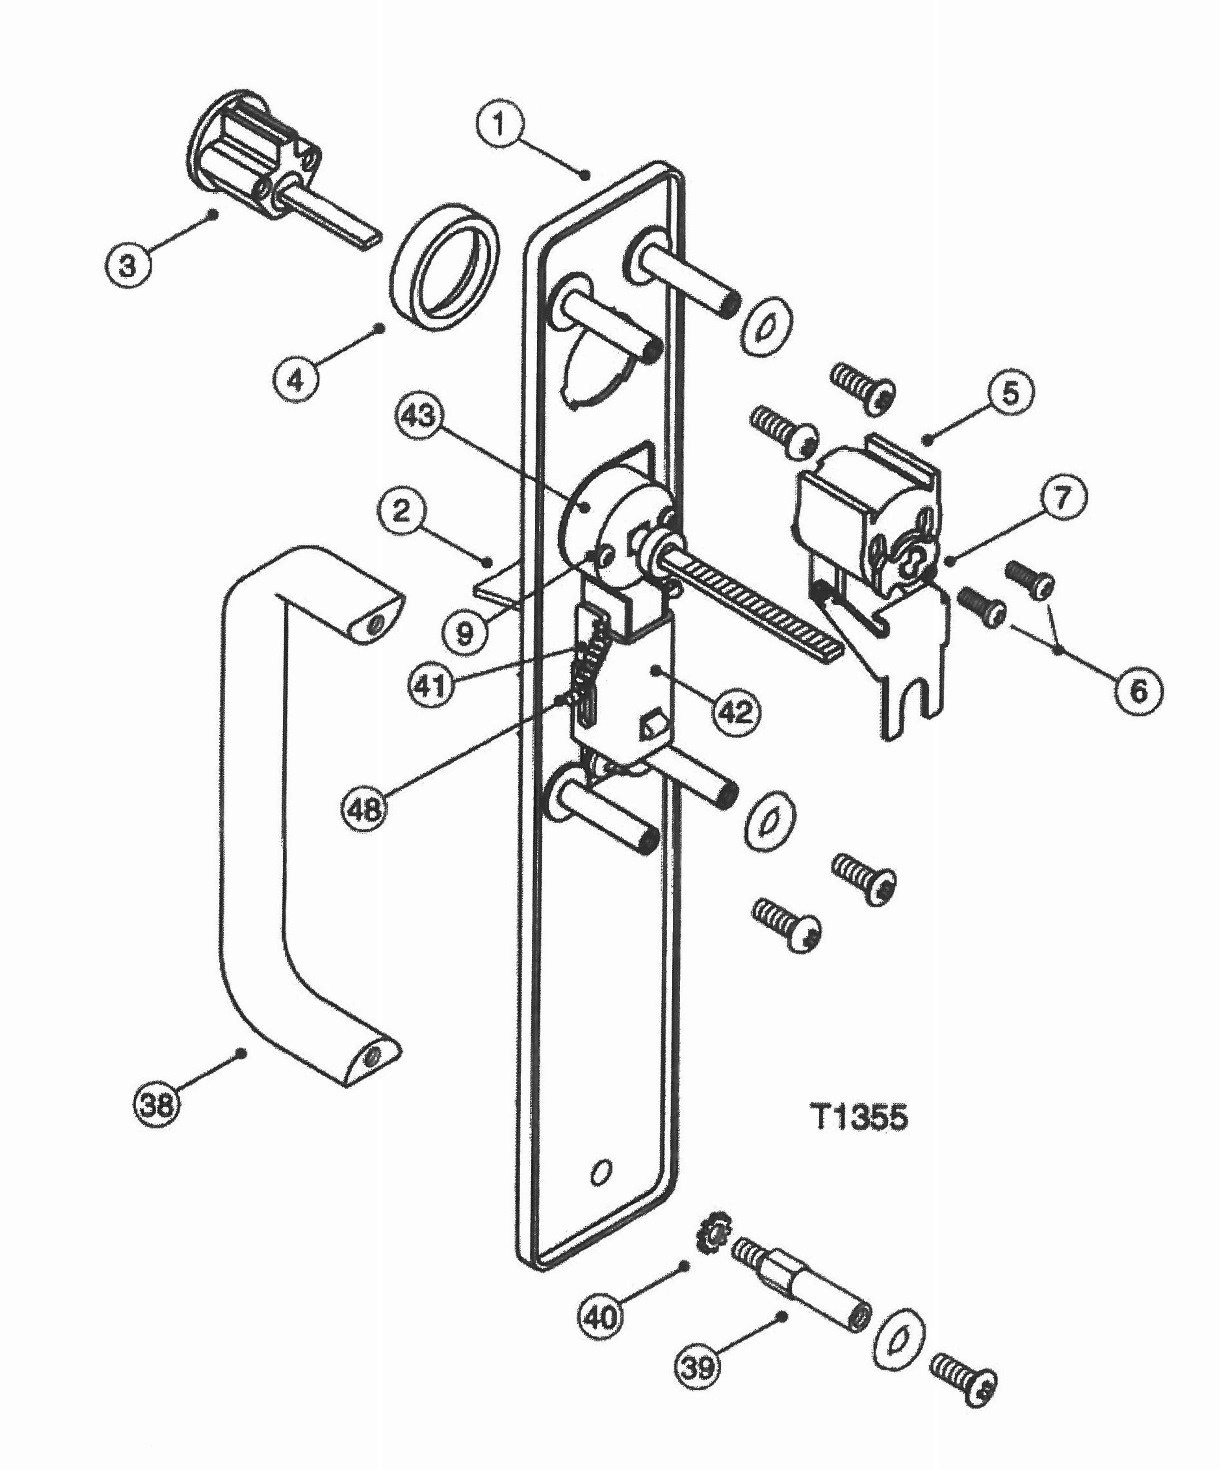 Yale Panic Bar Parts Diagram Pictures To Pin